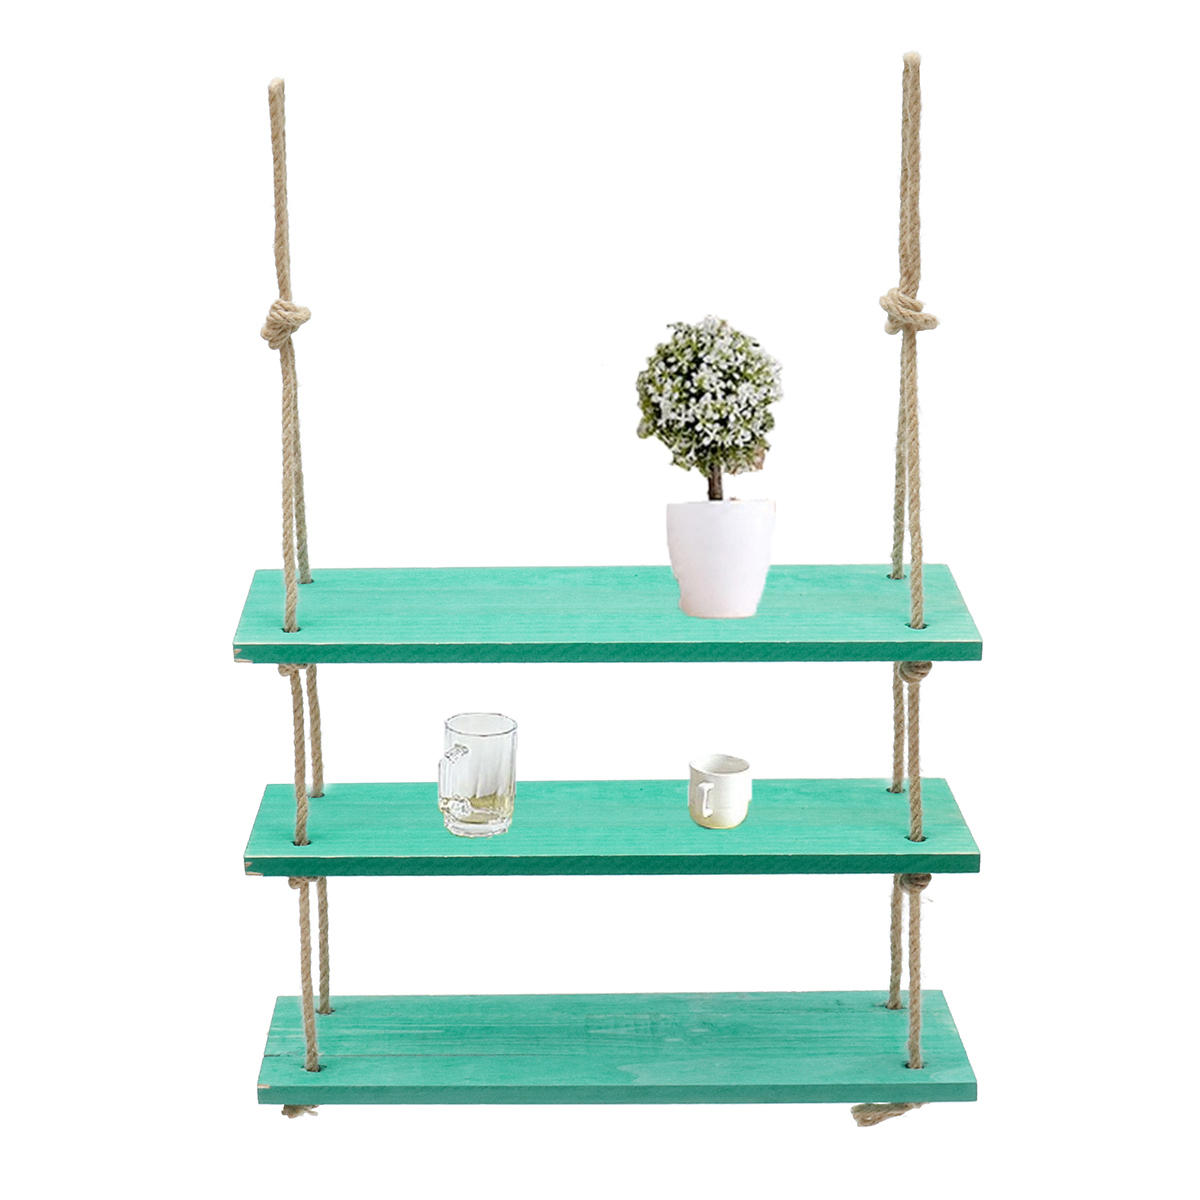 Home & Kitchen Size : 1 Tiers Hemp Rope Shelves Wood Wall